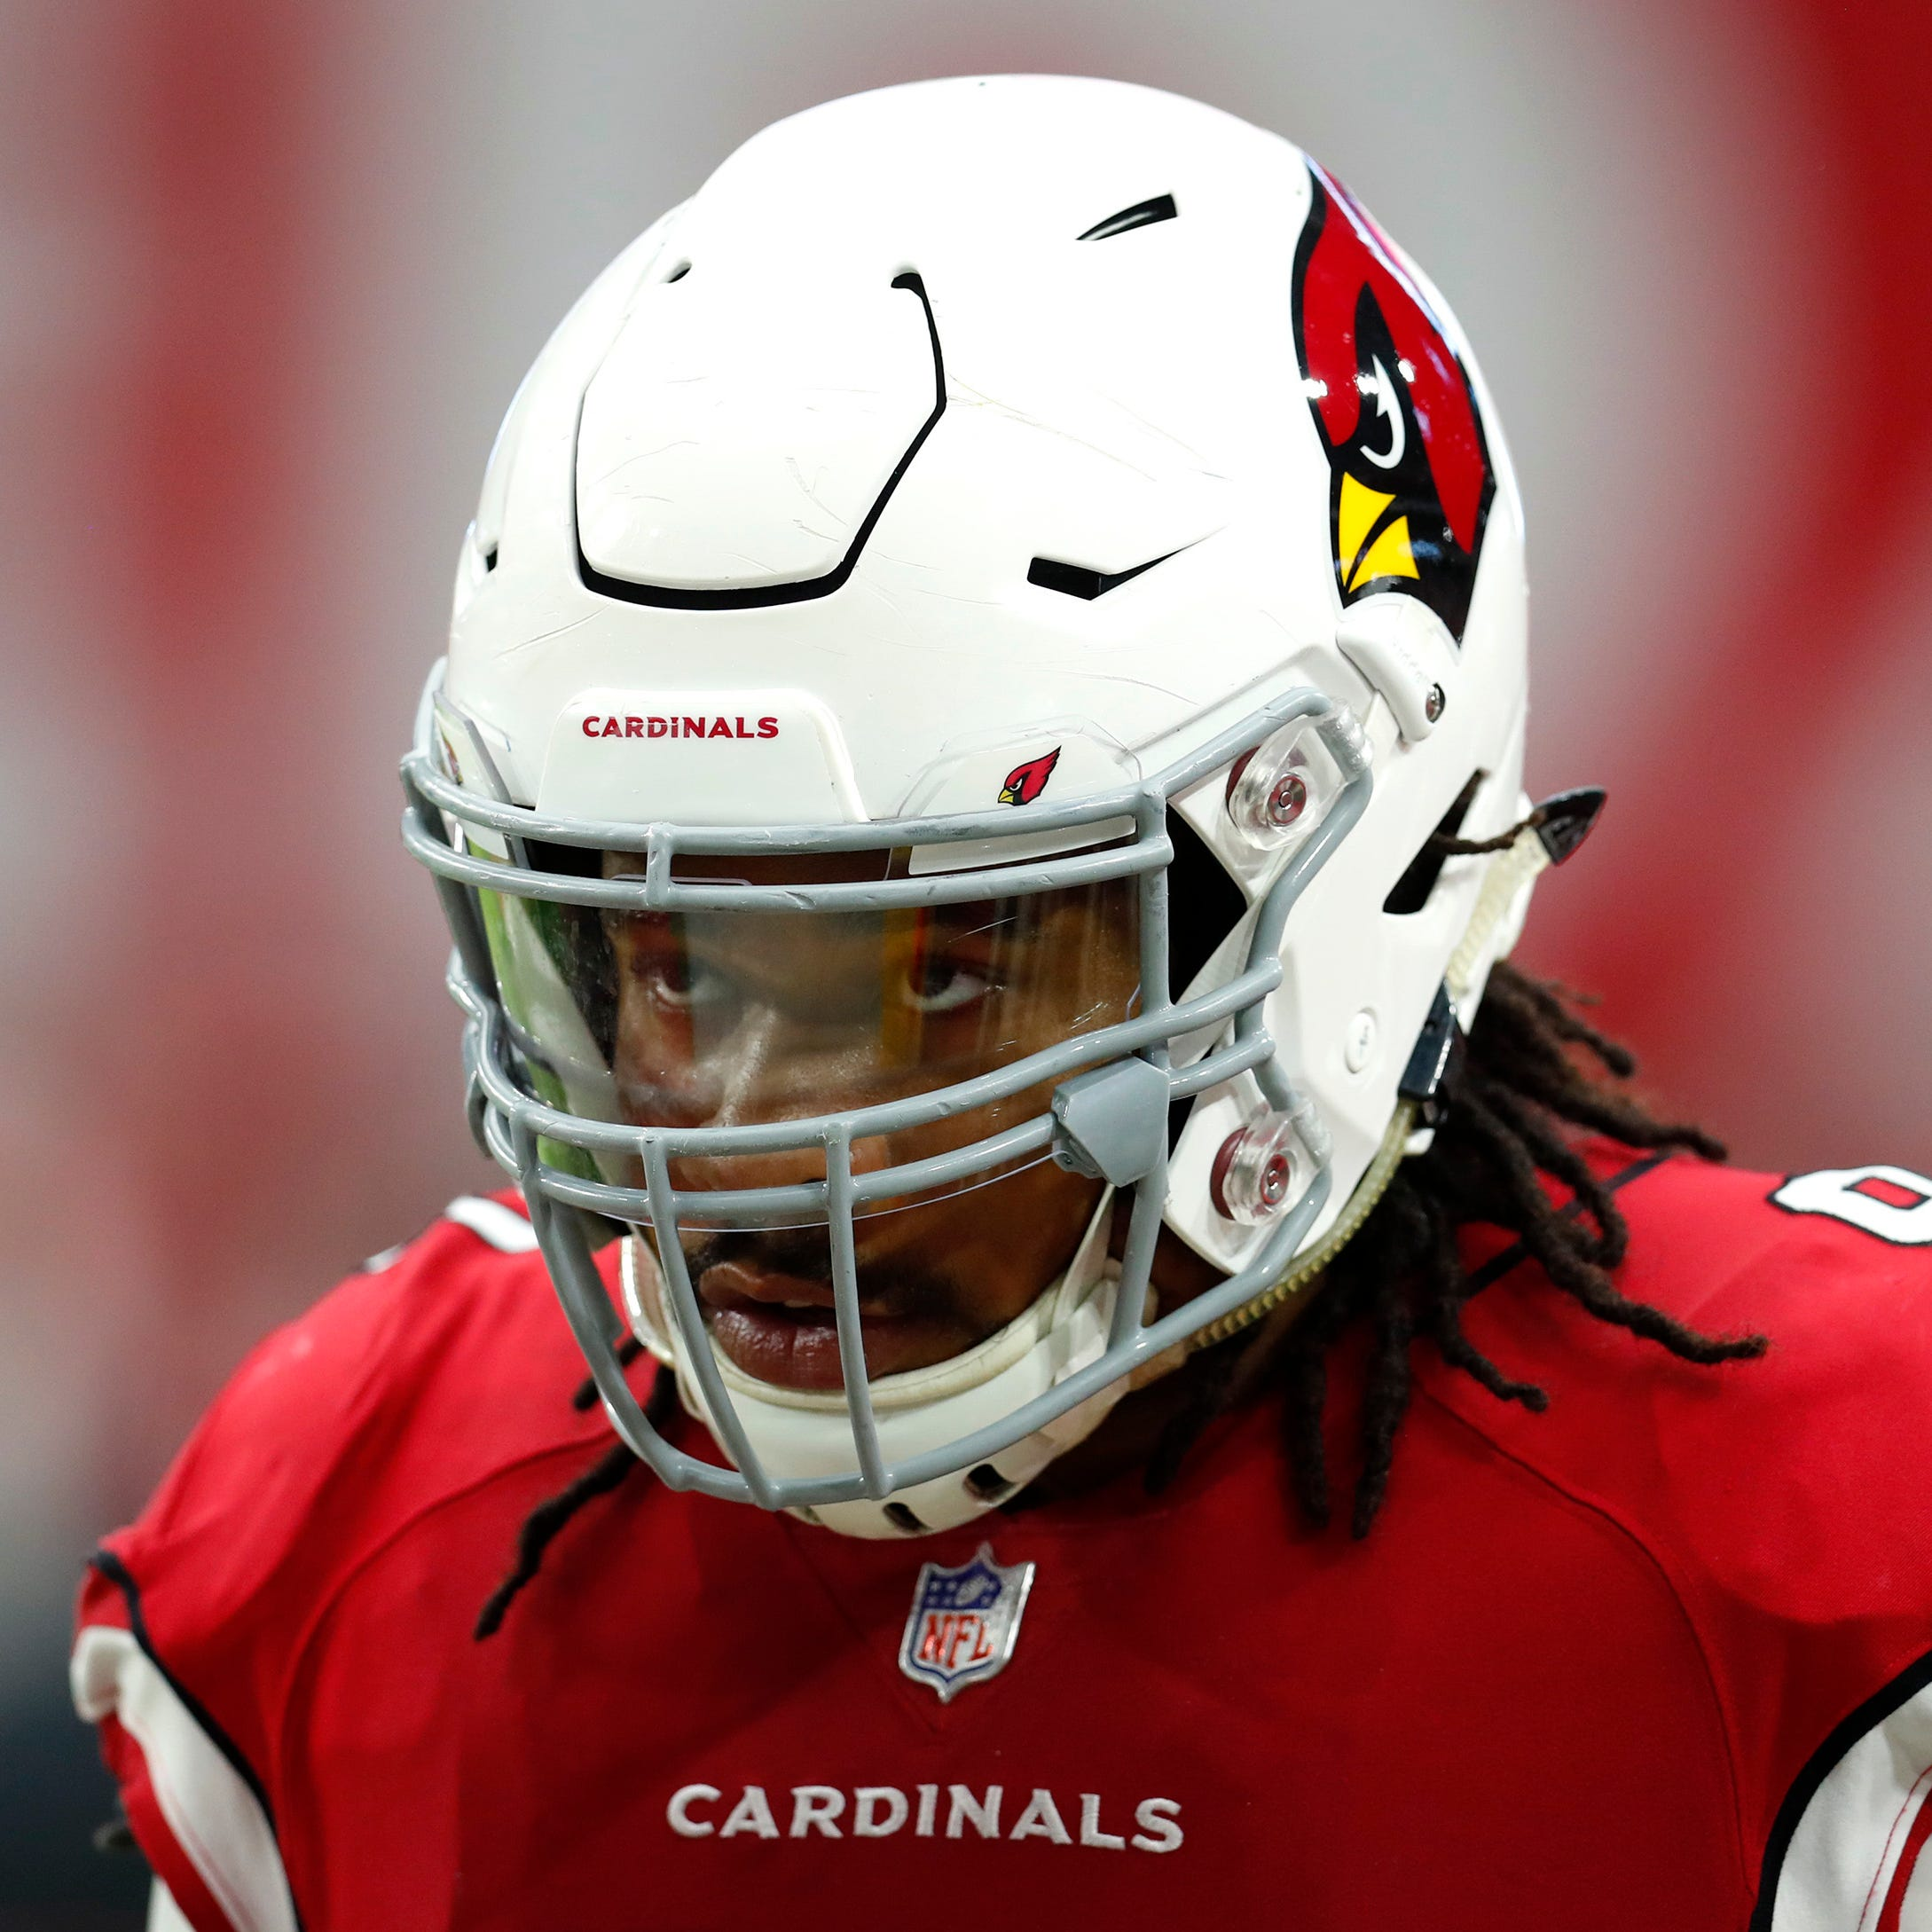 Cardinals decline option on defensive lineman Nkemdiche, who will be free agent in 2020